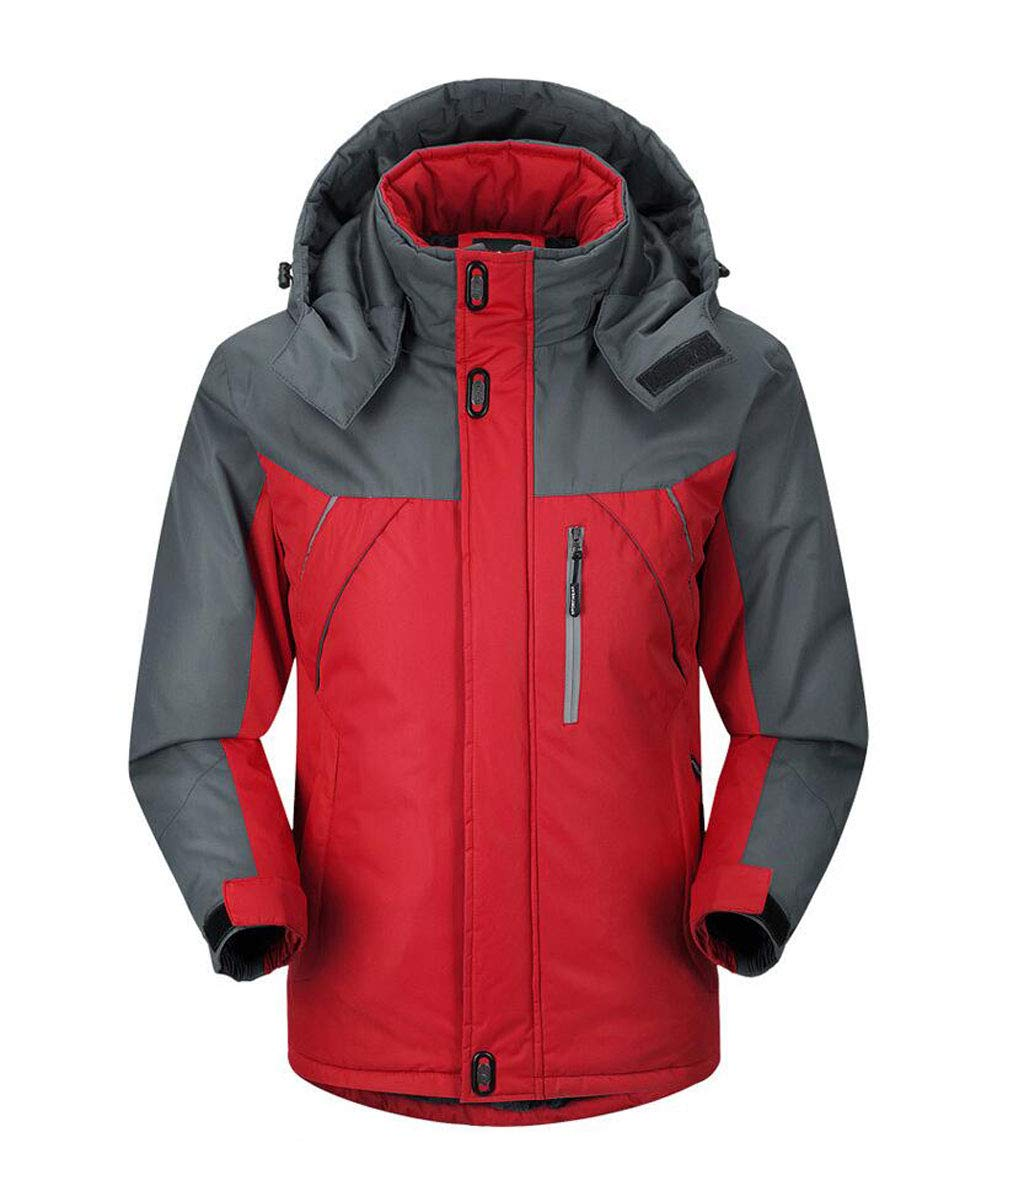 WSCS Herrenjacke, Freizeitjacke mit Kapuze Ski Lady Jacket Raincoat Windproof